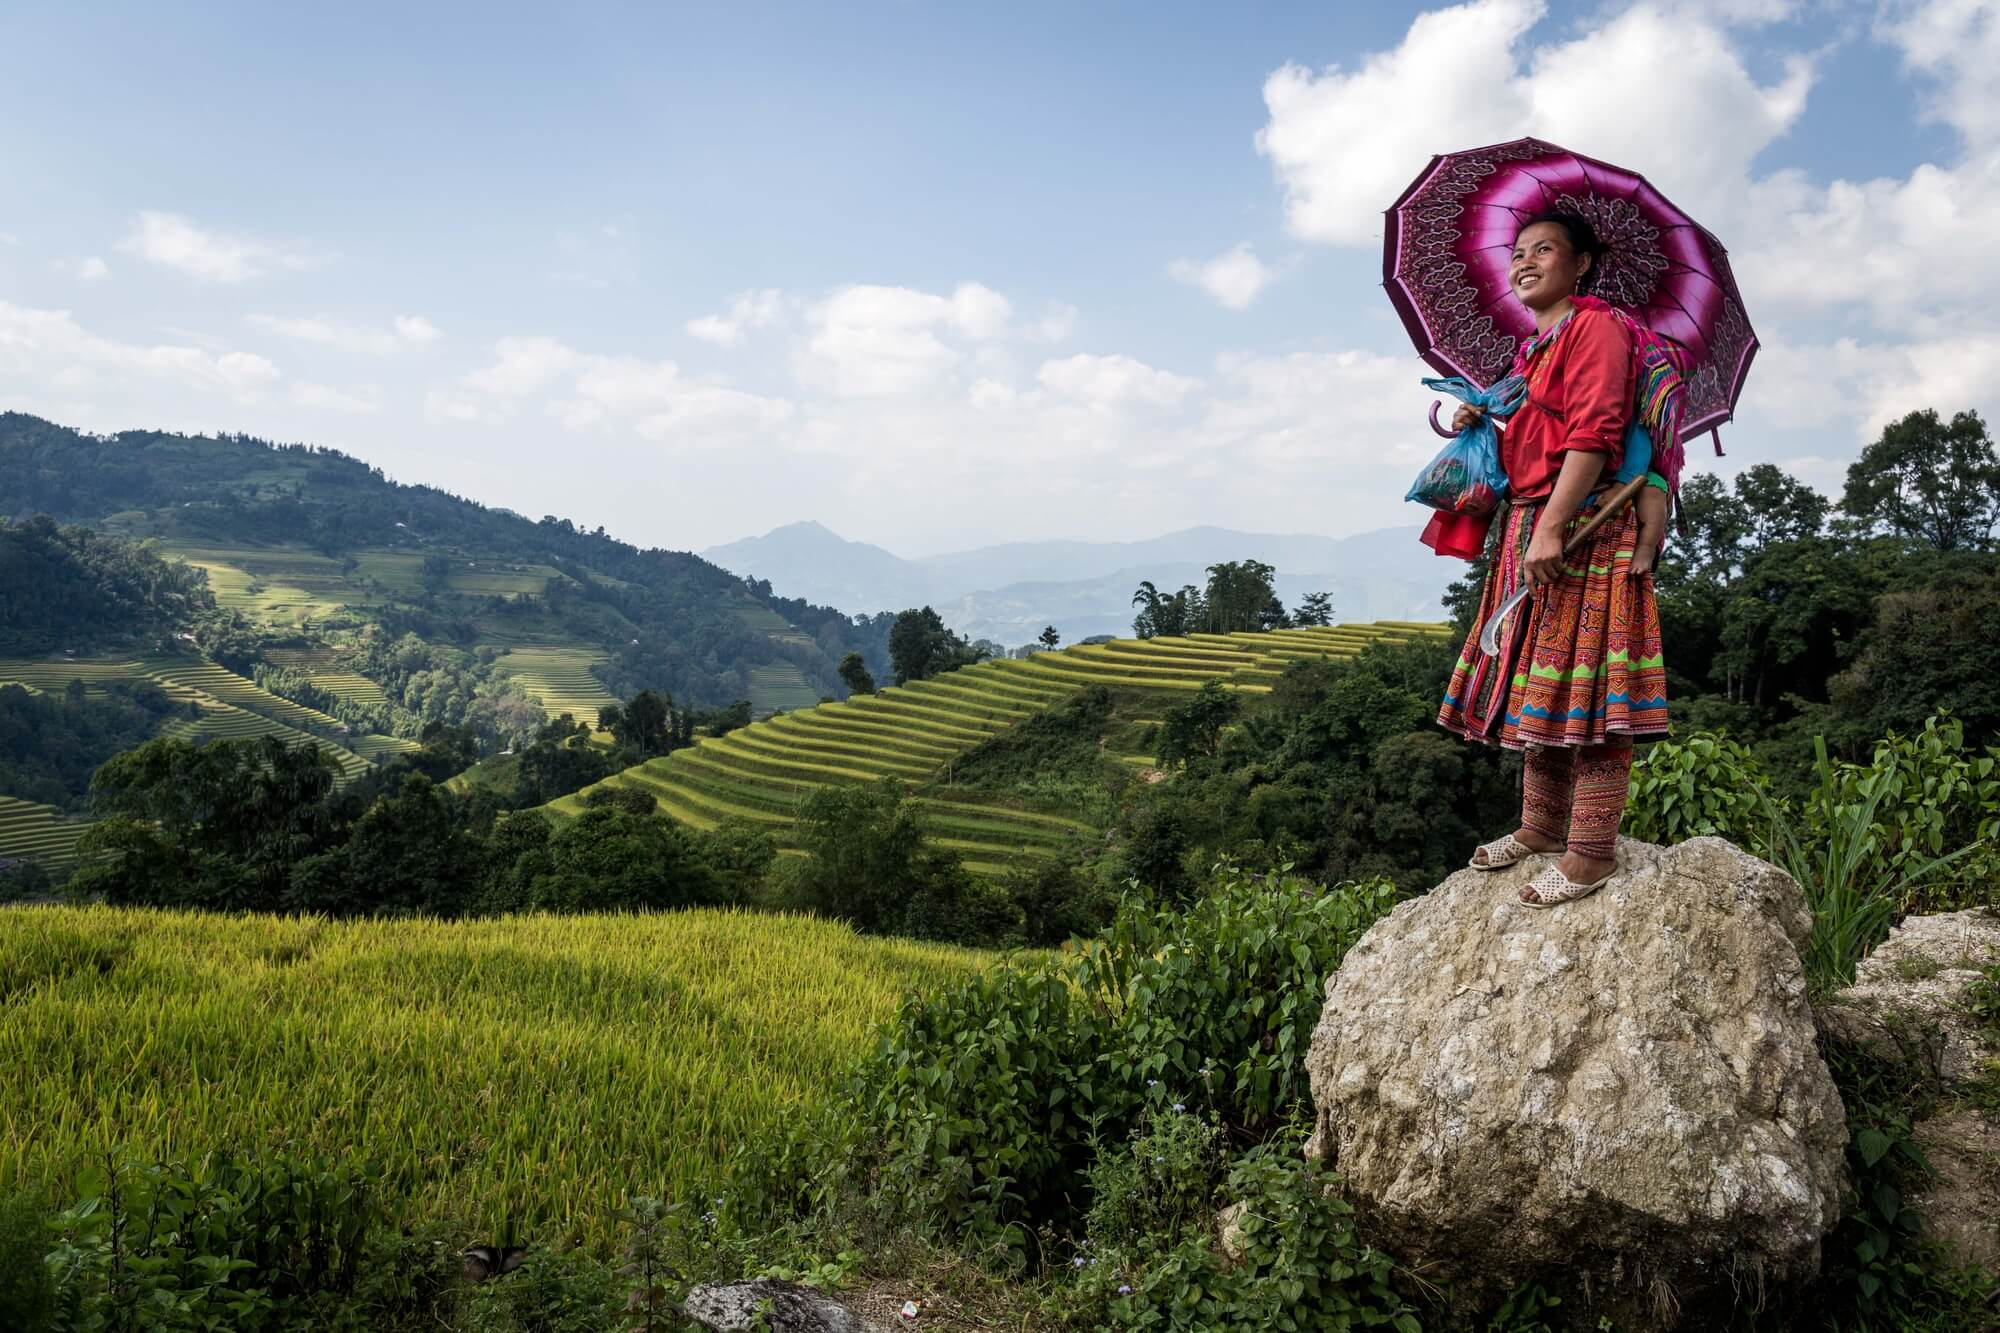 Vietnamese Minority with colorful umbrella and outfit on a rock over viewing the rice fields